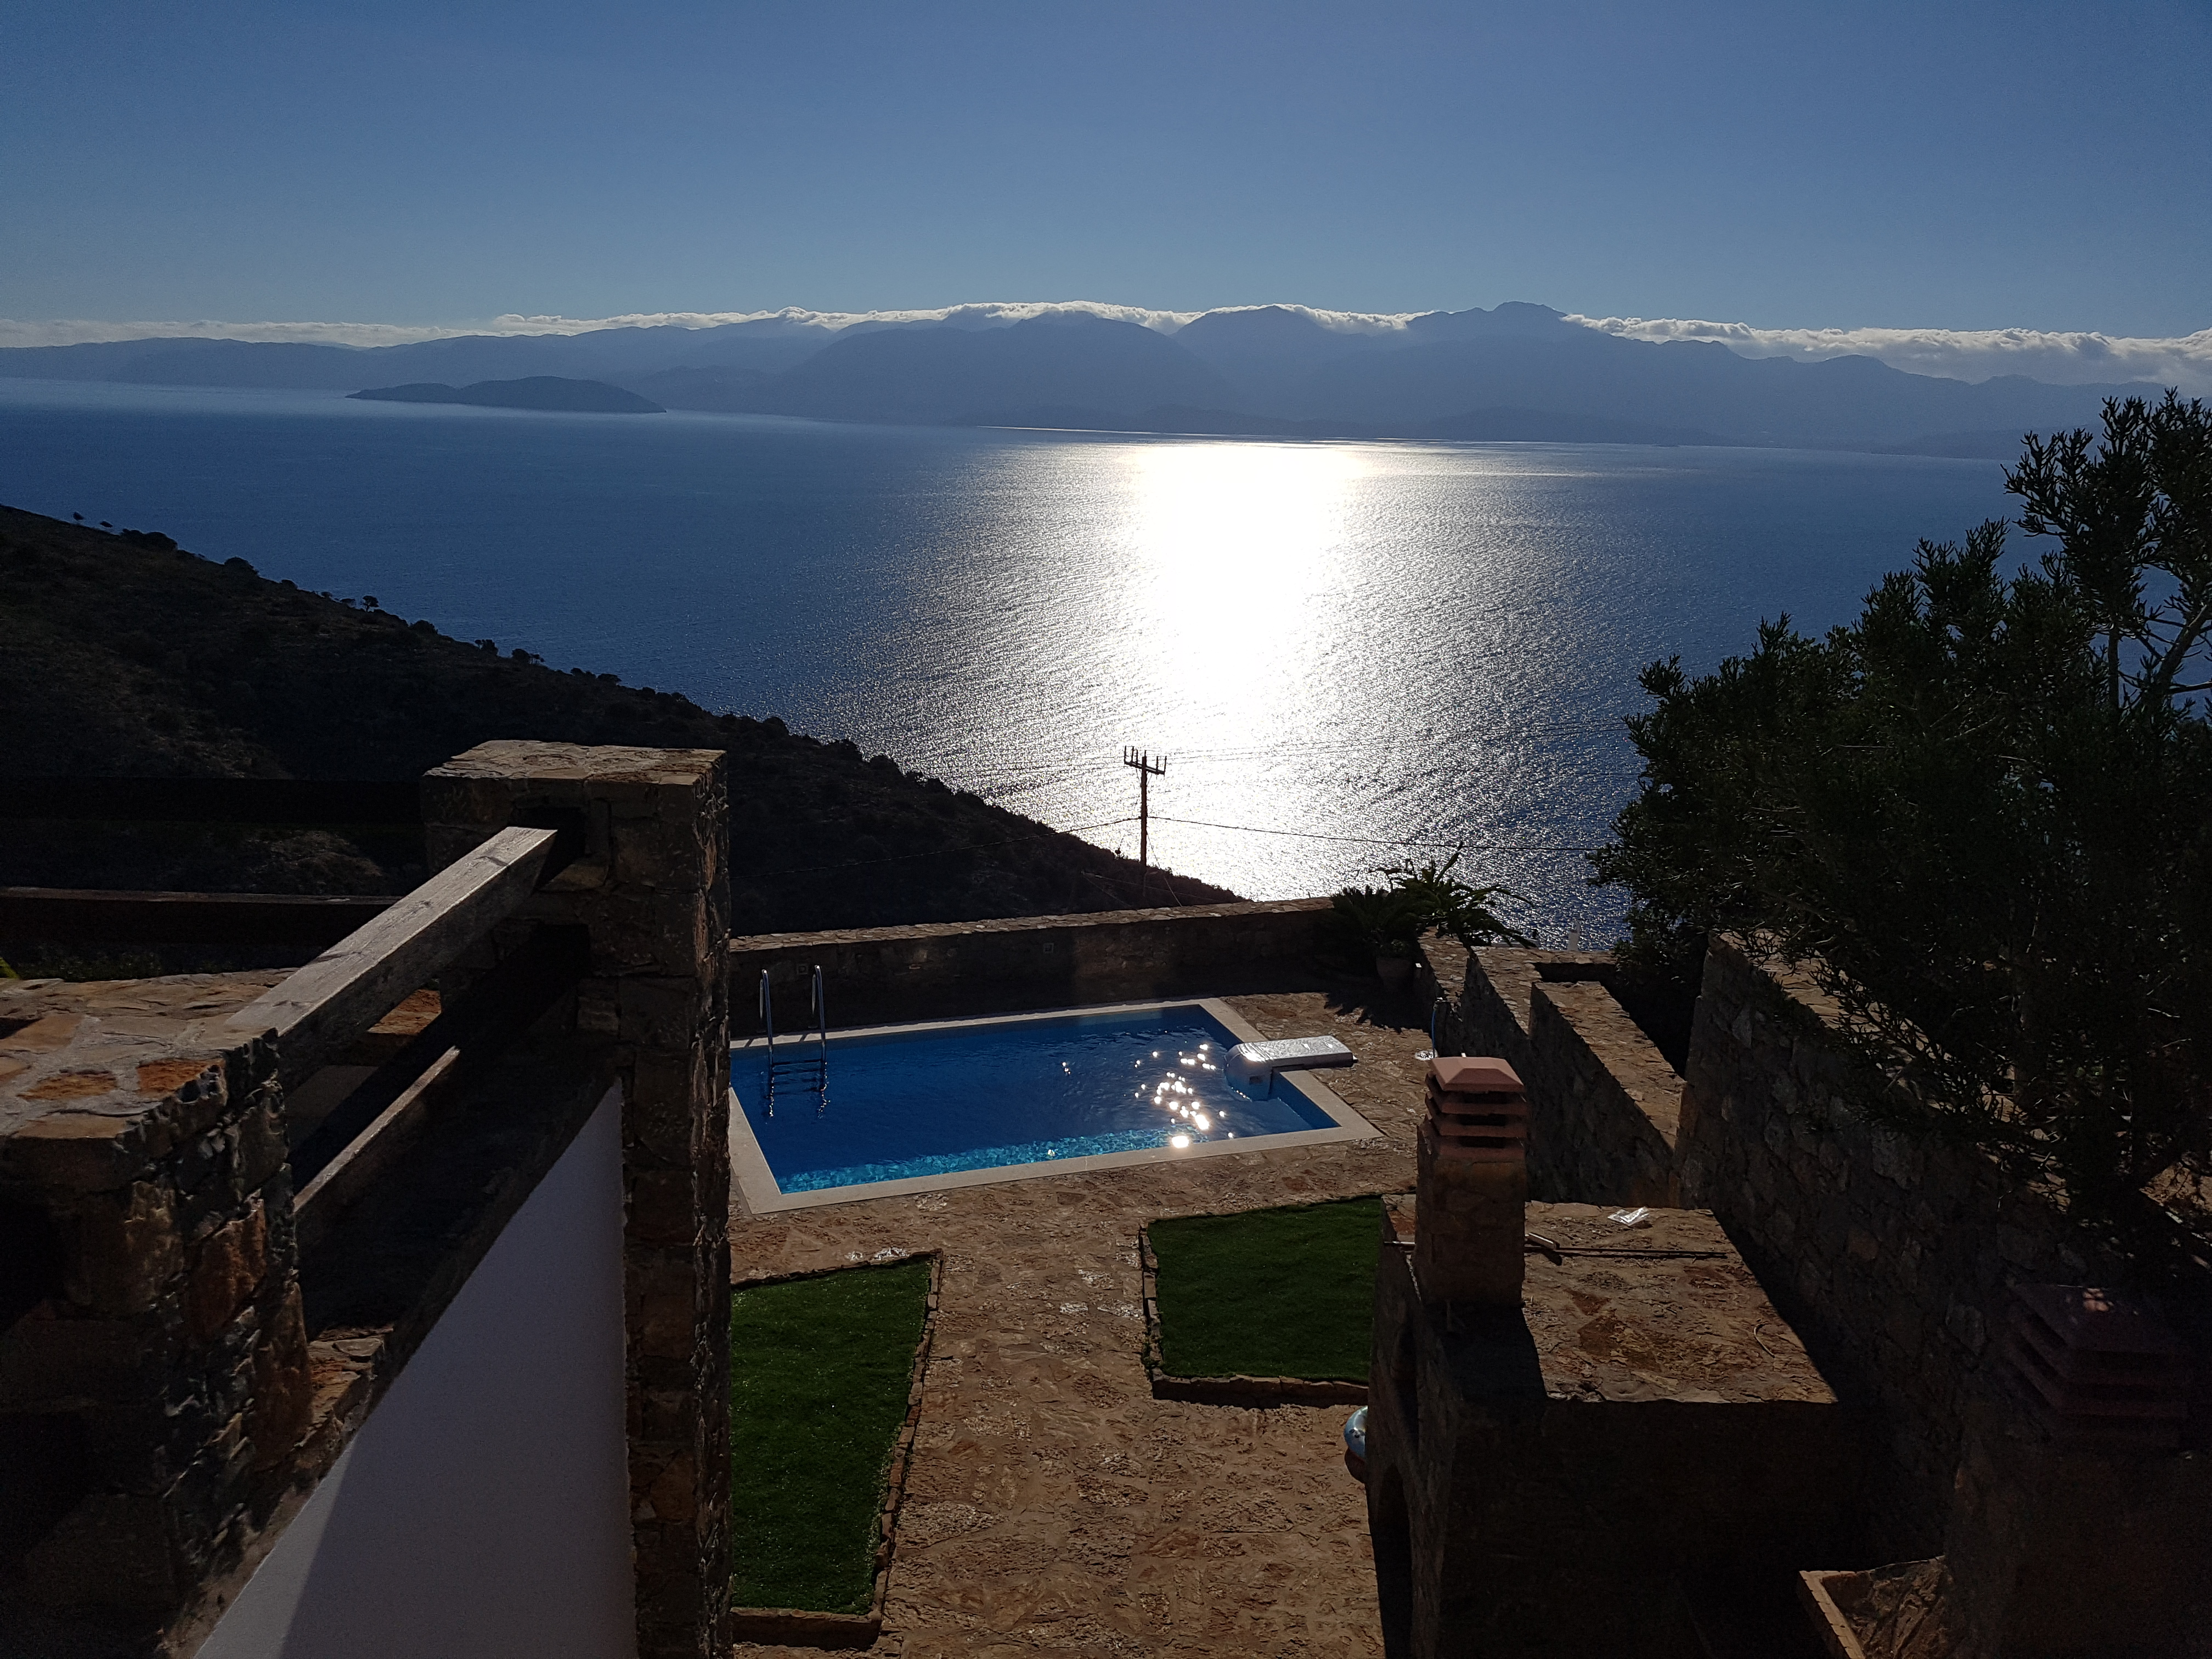 4 bedroom villa with pool and Sea Views in desired location. Crete